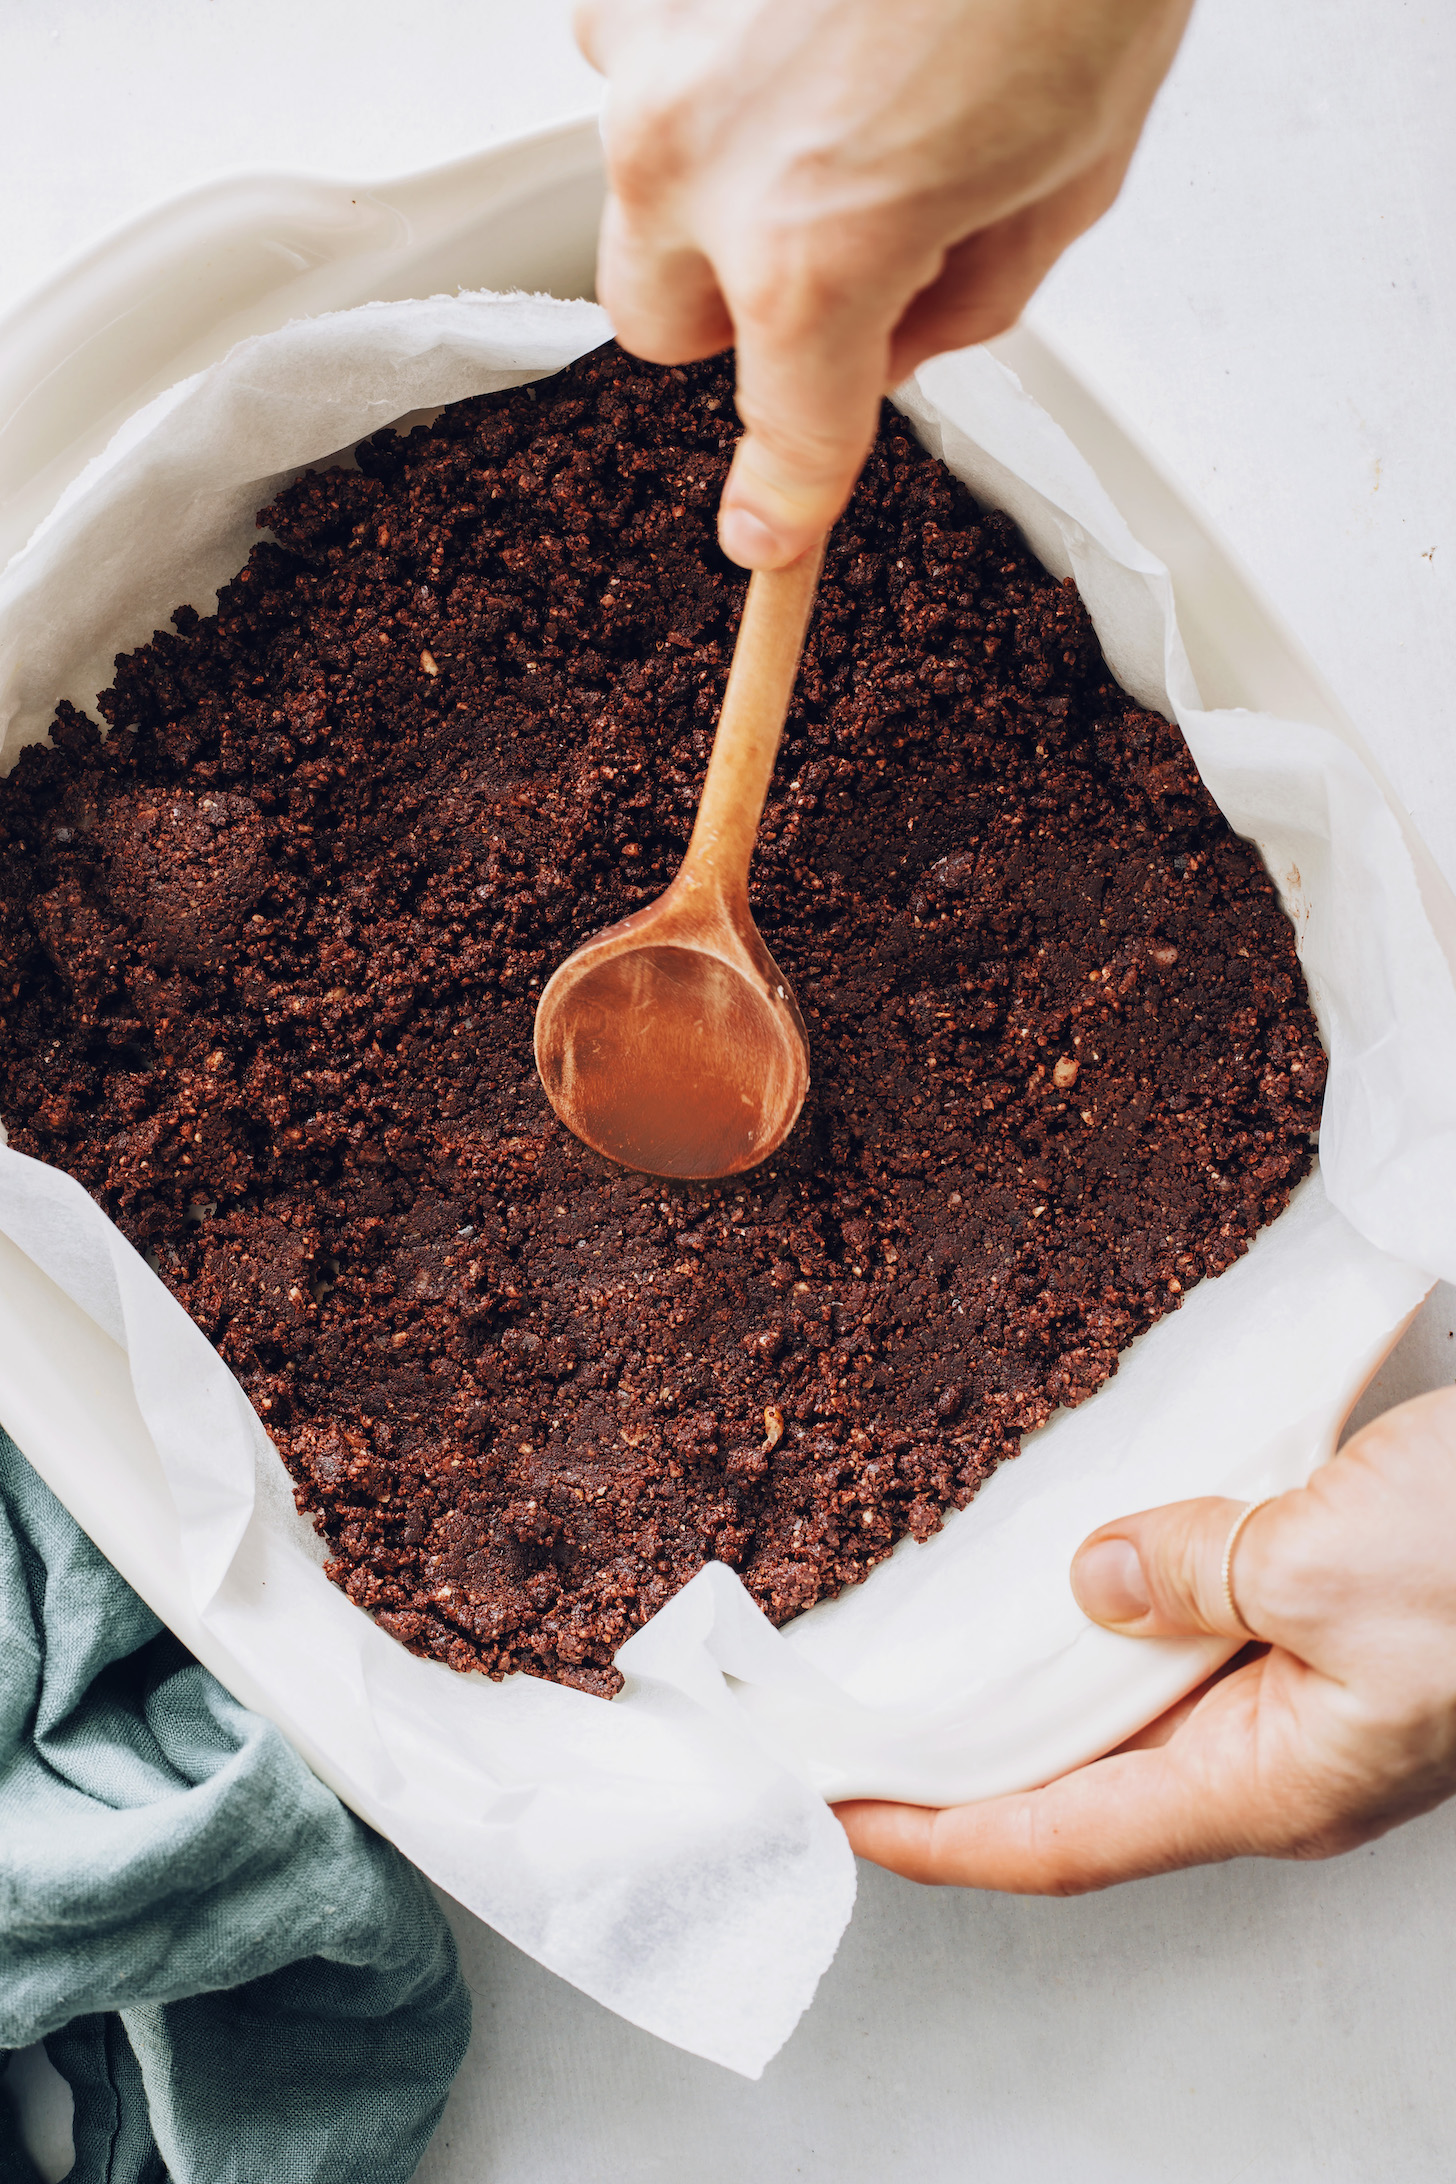 Using a wooden spoon to spread the chocolate brownie layer in a parchment-lined pan